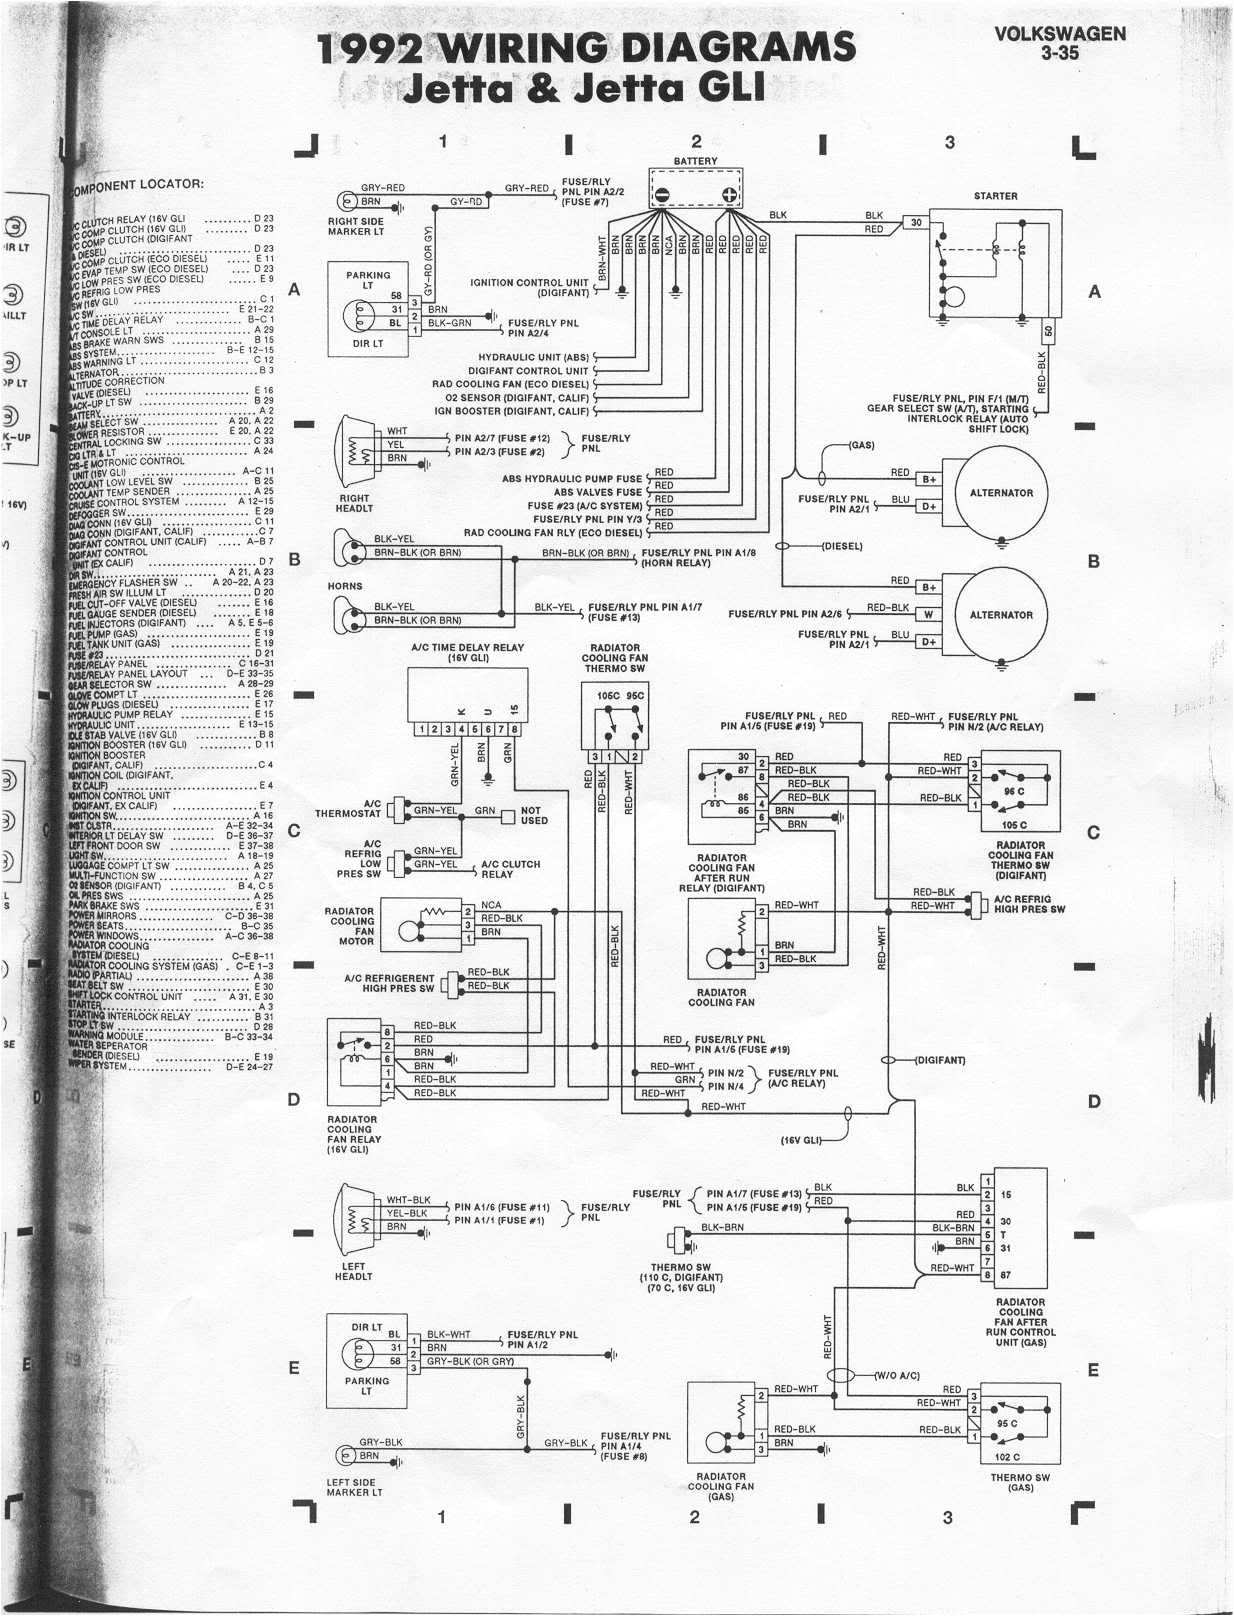 2002 vw jetta wiring diagram wiring diagram data2002 jetta wiring diagram for 0900c152801be2f1 with